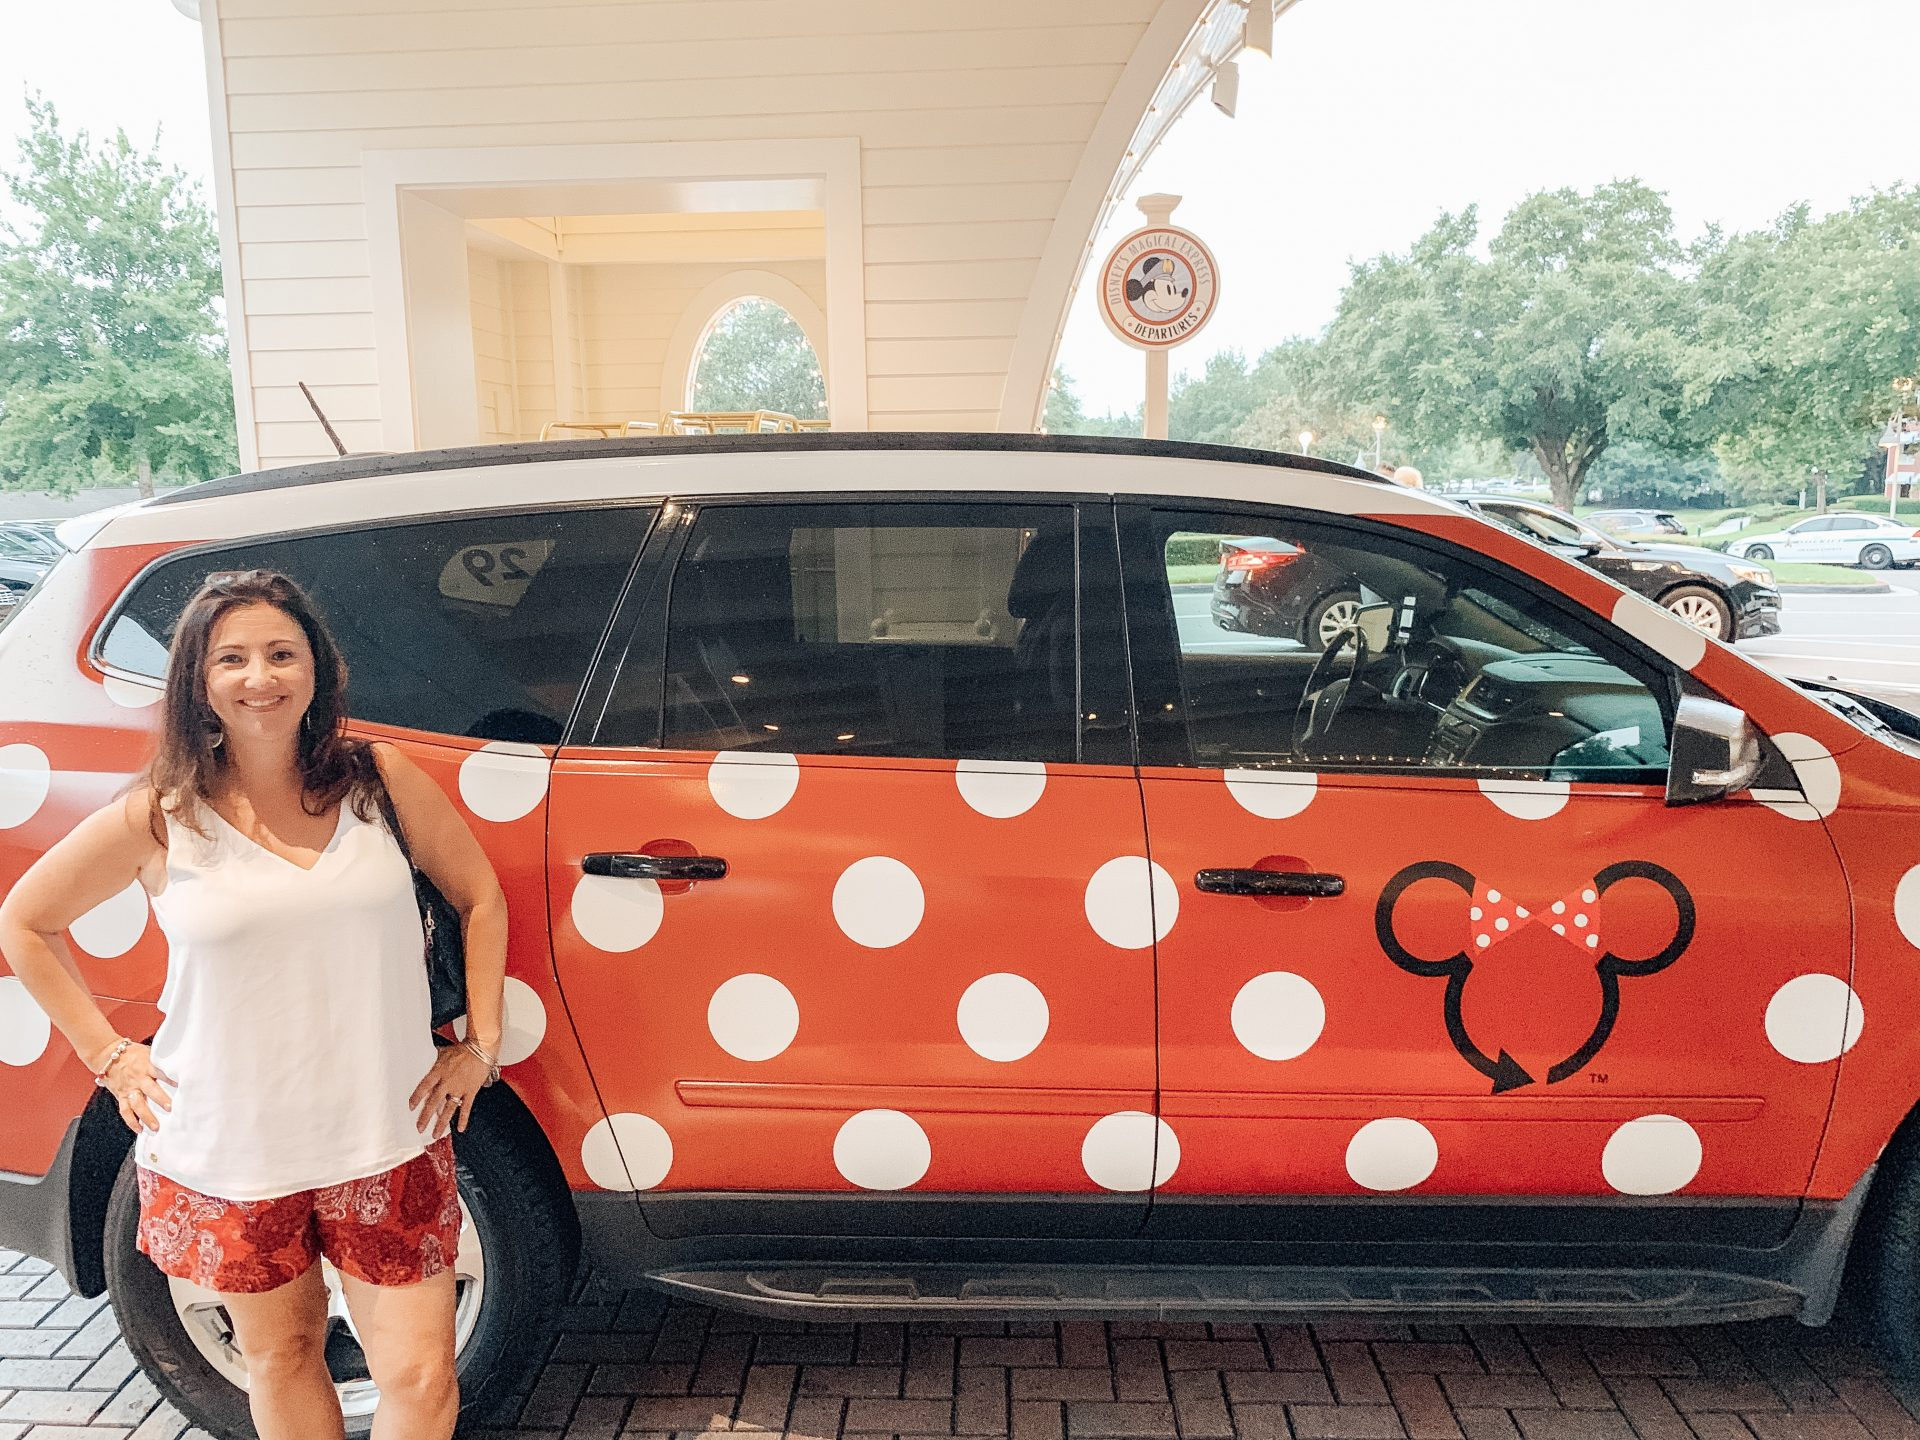 Disney's Minnie Van transportation Lyft at Disney World